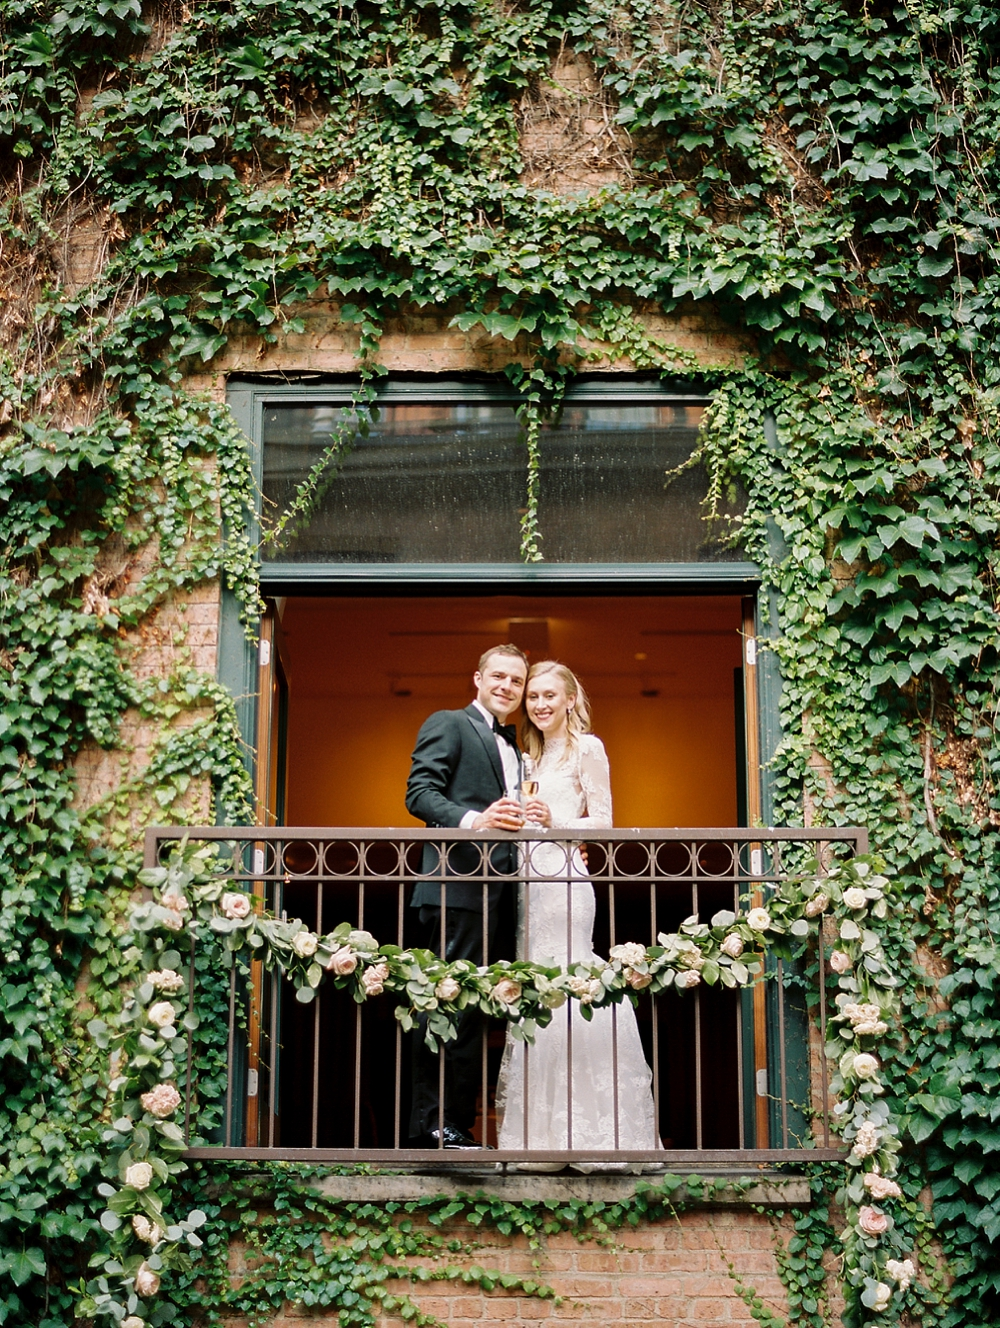 kristin-la-voie-photography-chicago-wedding-photographer-185